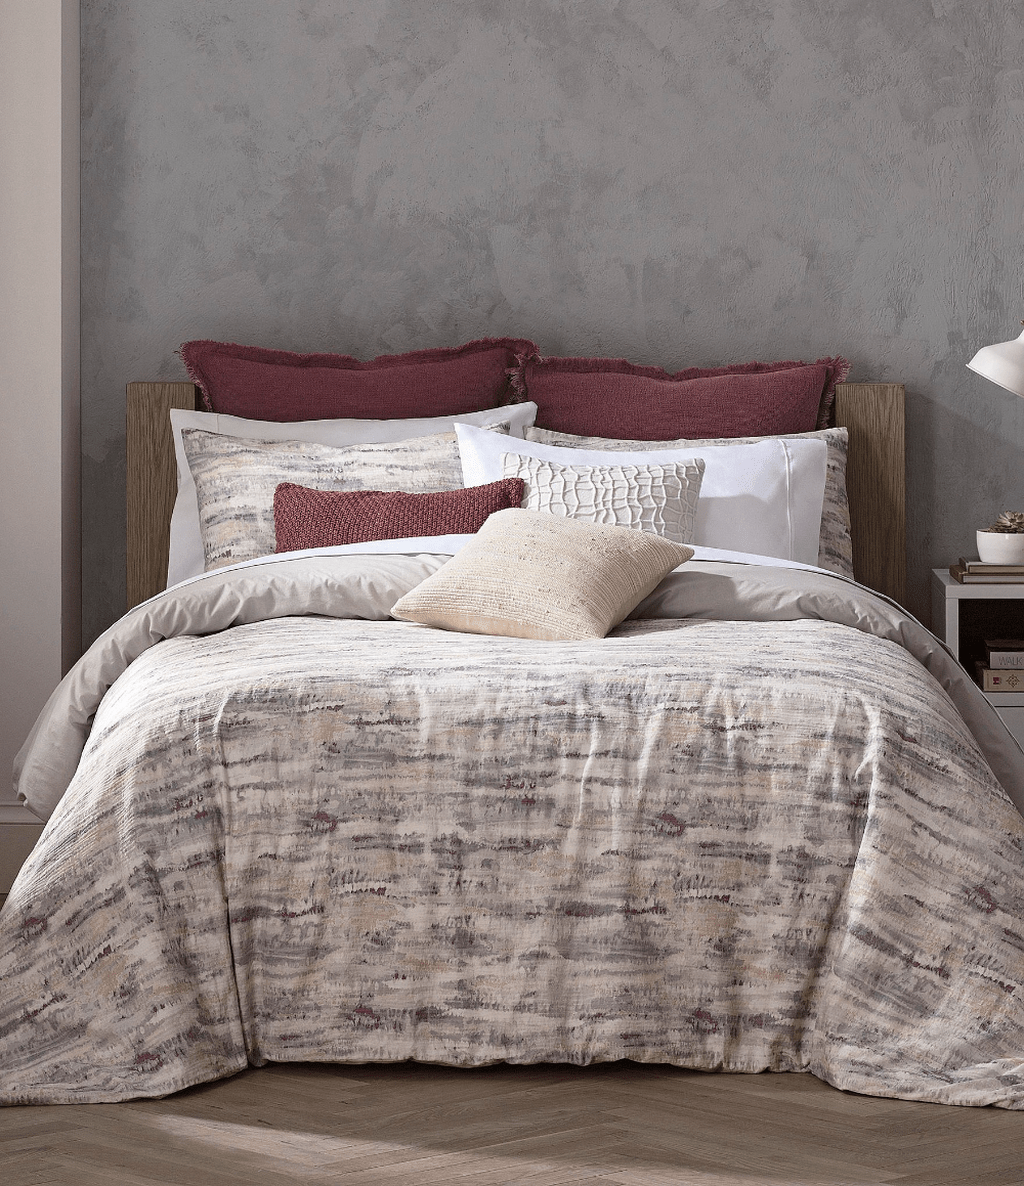 Inspiring Bedding Sets For Perfect Bedroom Decorations 05